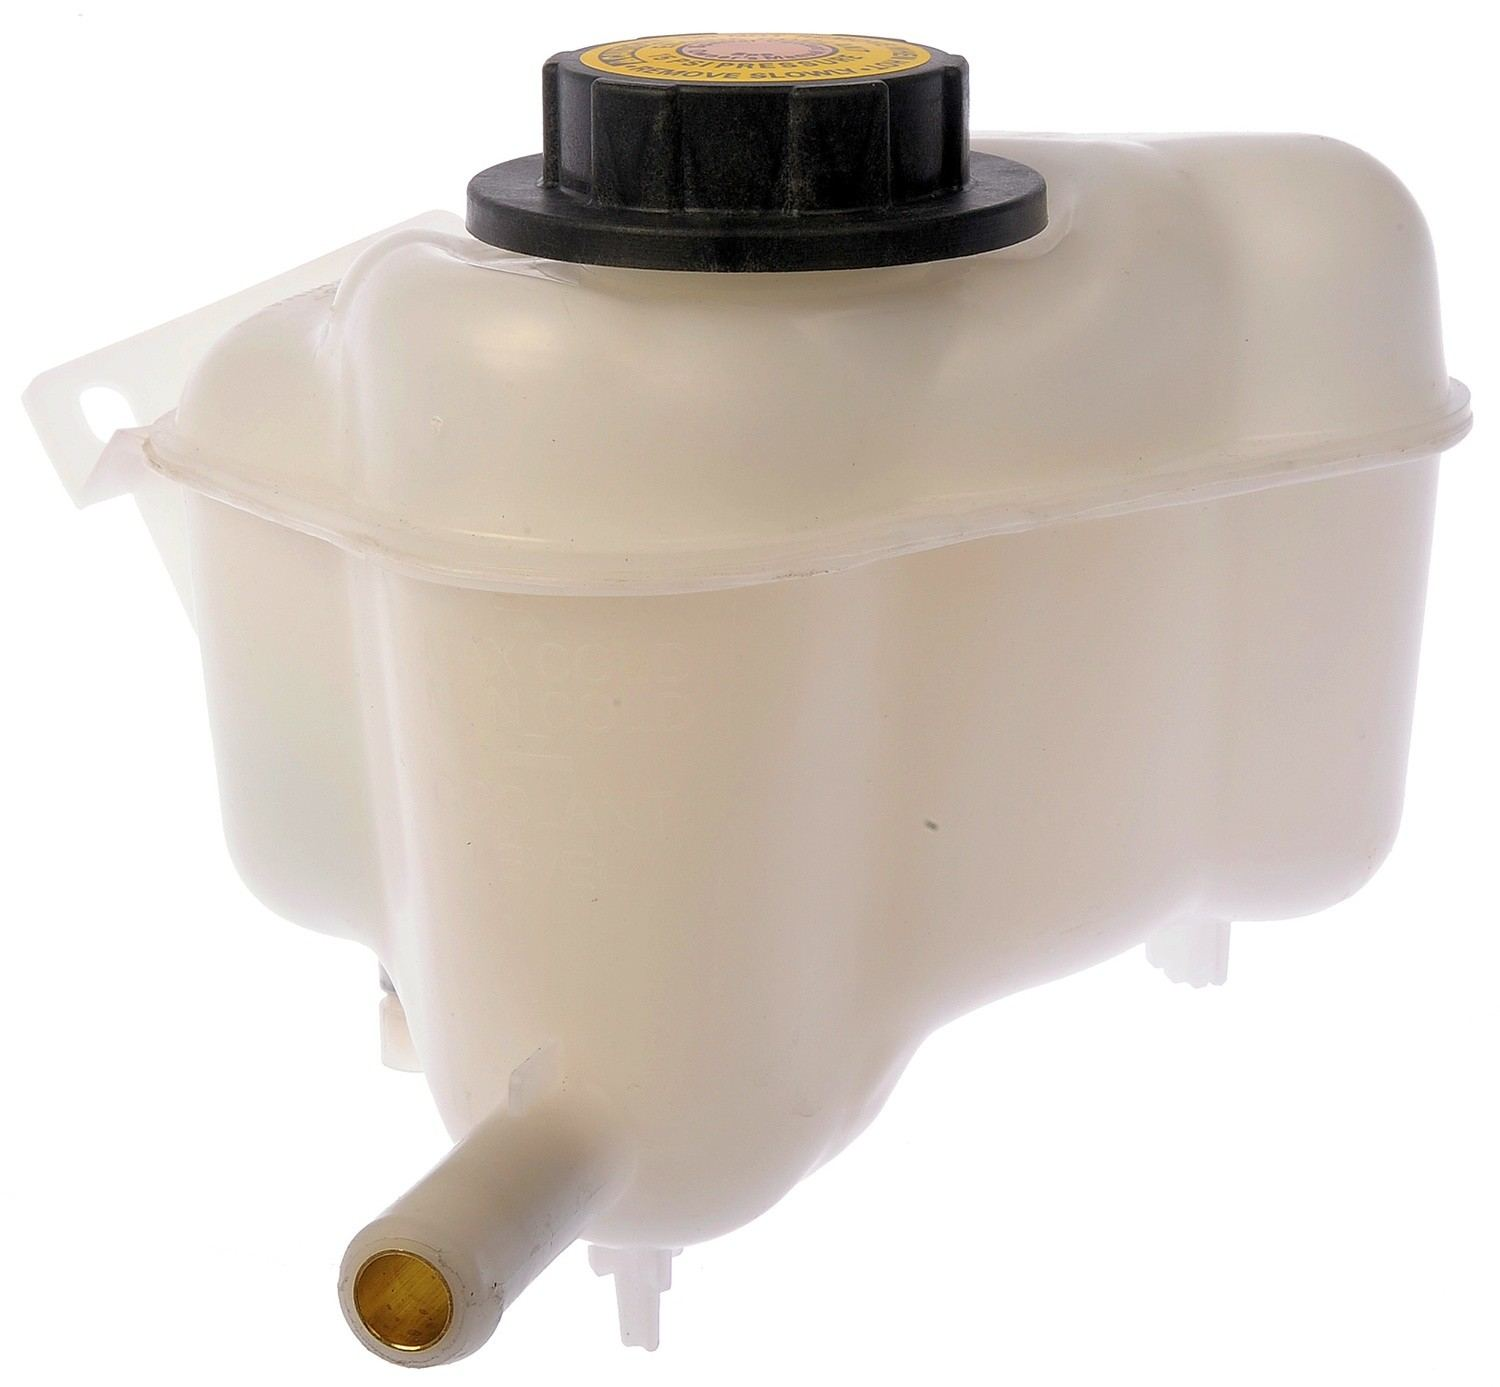 DORMAN OE SOLUTIONS - Engine Coolant Recovery Tank (Front) - DRE 603-121